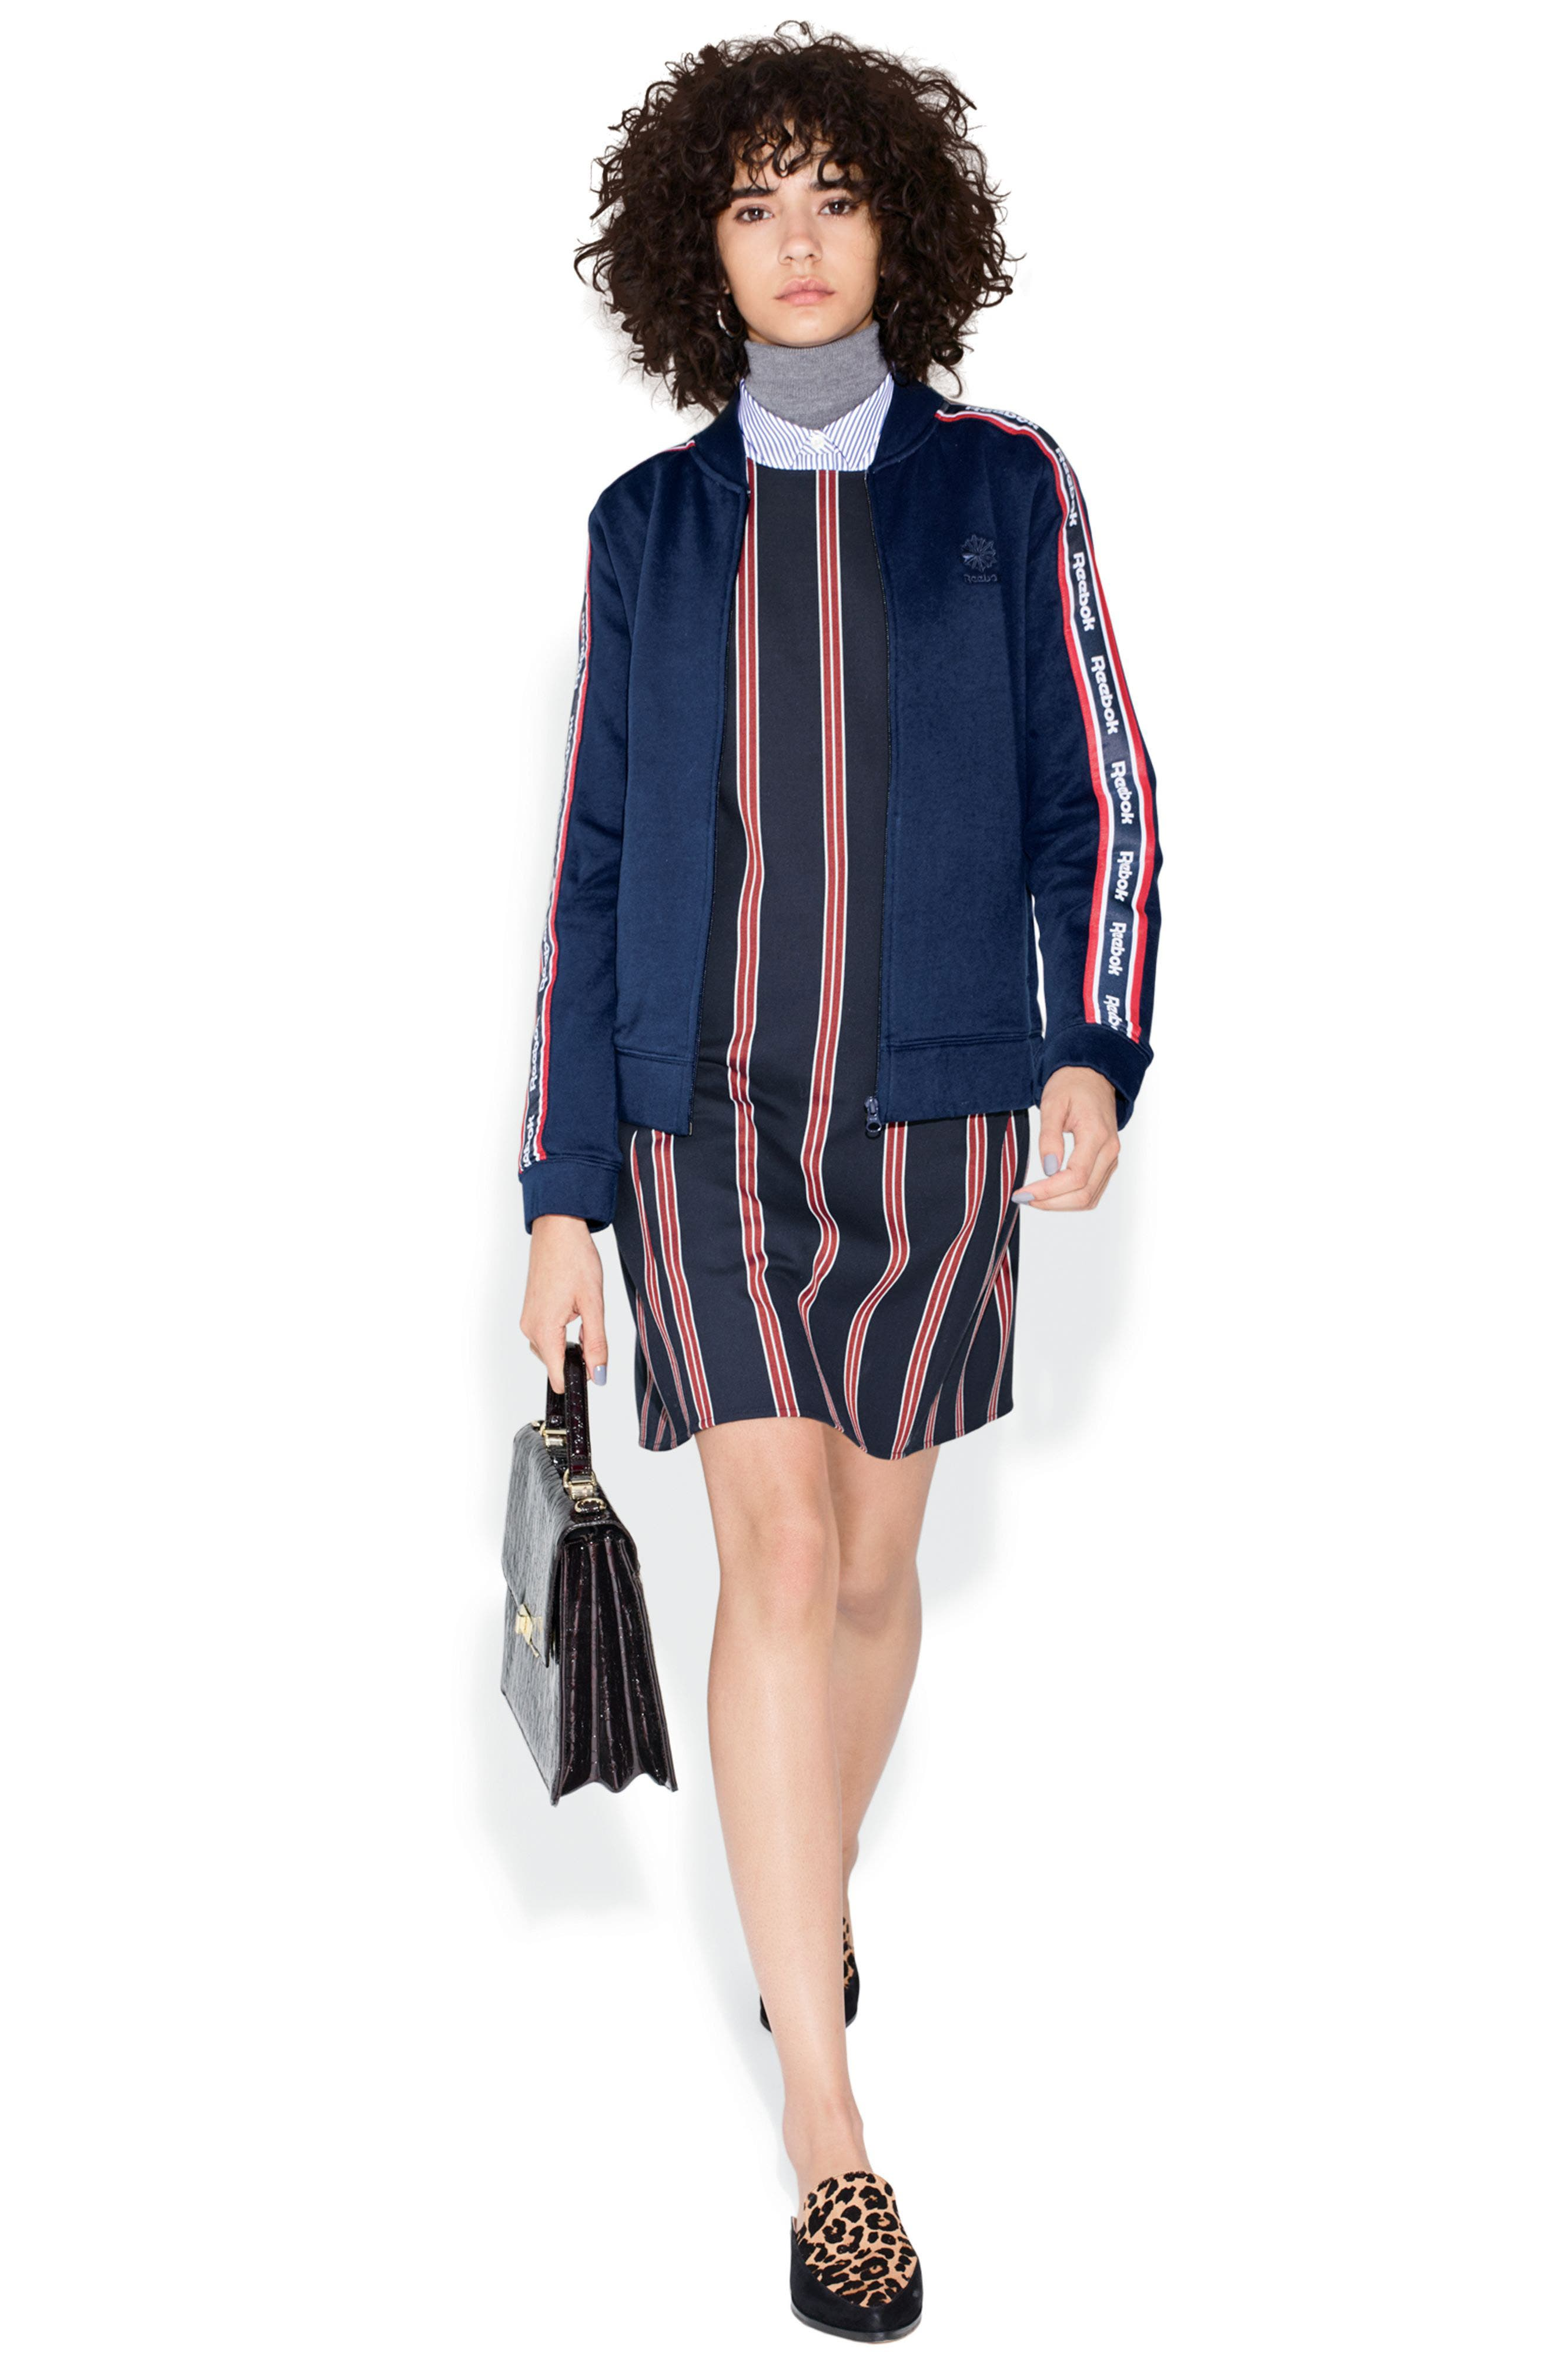 Reebok Jacket, Veronica Beard Blouse & Halogen® Dress Outfit with Accessories